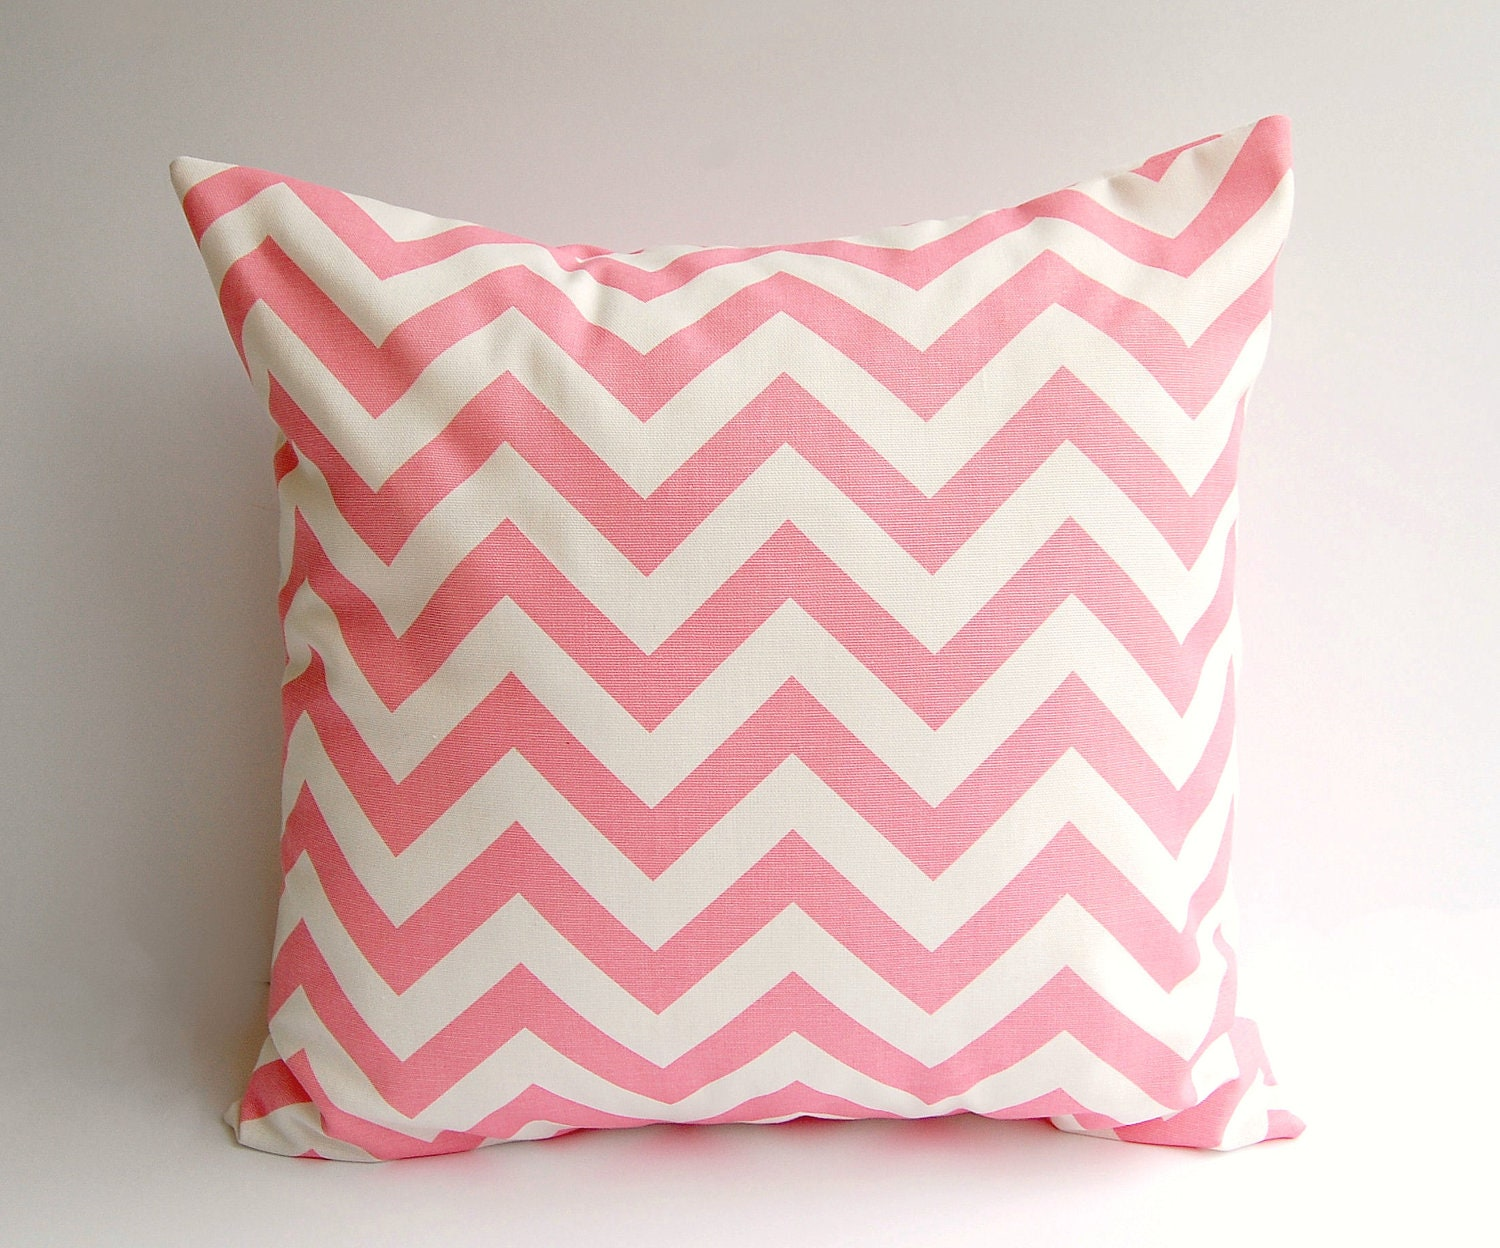 Baby Pink Decorative Pillows : Throw pillow cover One 16 x 16 baby pink by ThePillowPeople